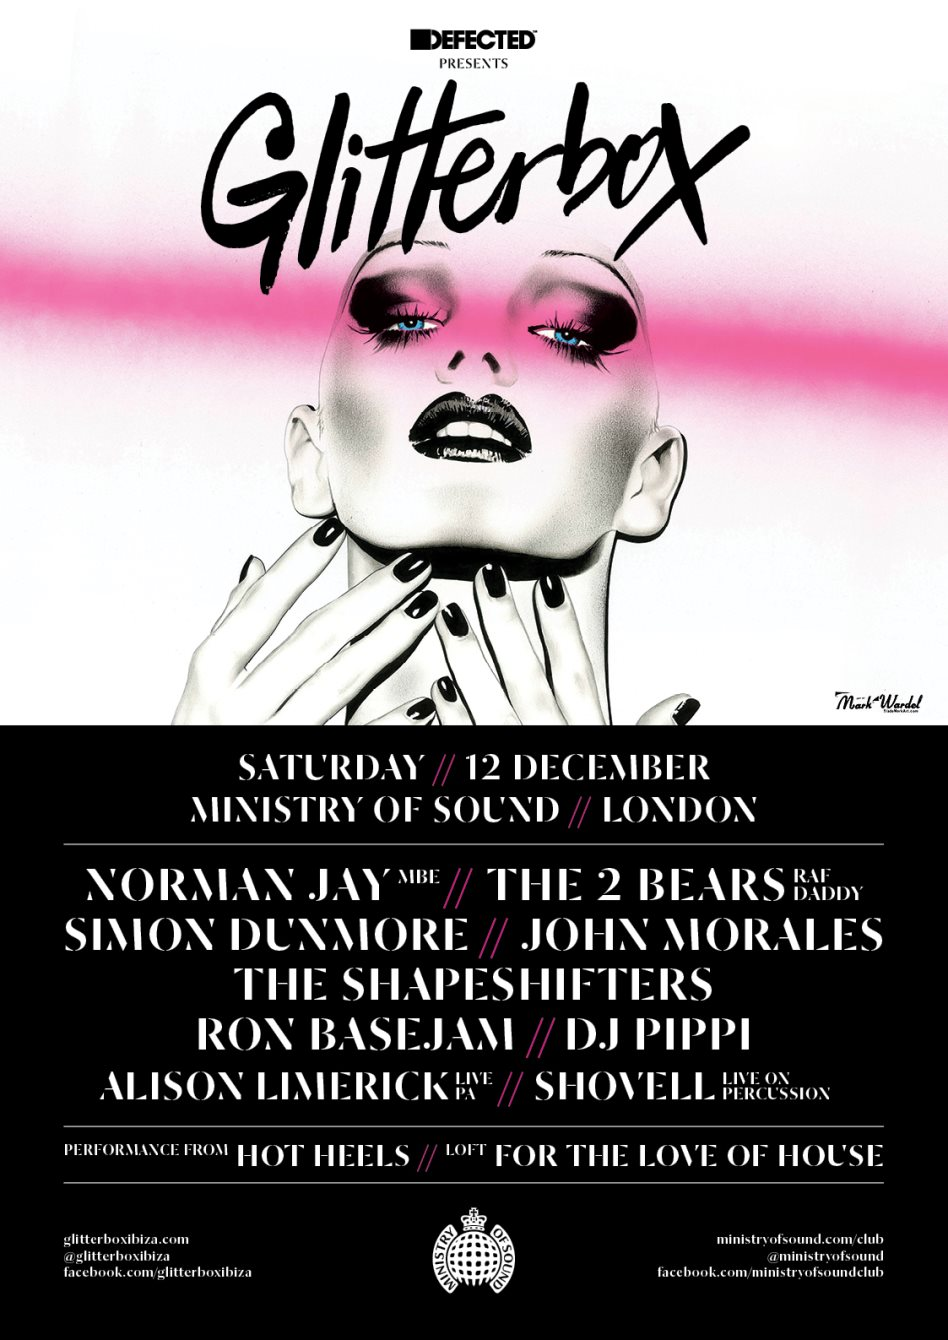 download → The Shapeshifters - live at Defected presents Glitterbox (Ministry of Sound, London) - 12-Dec-2015